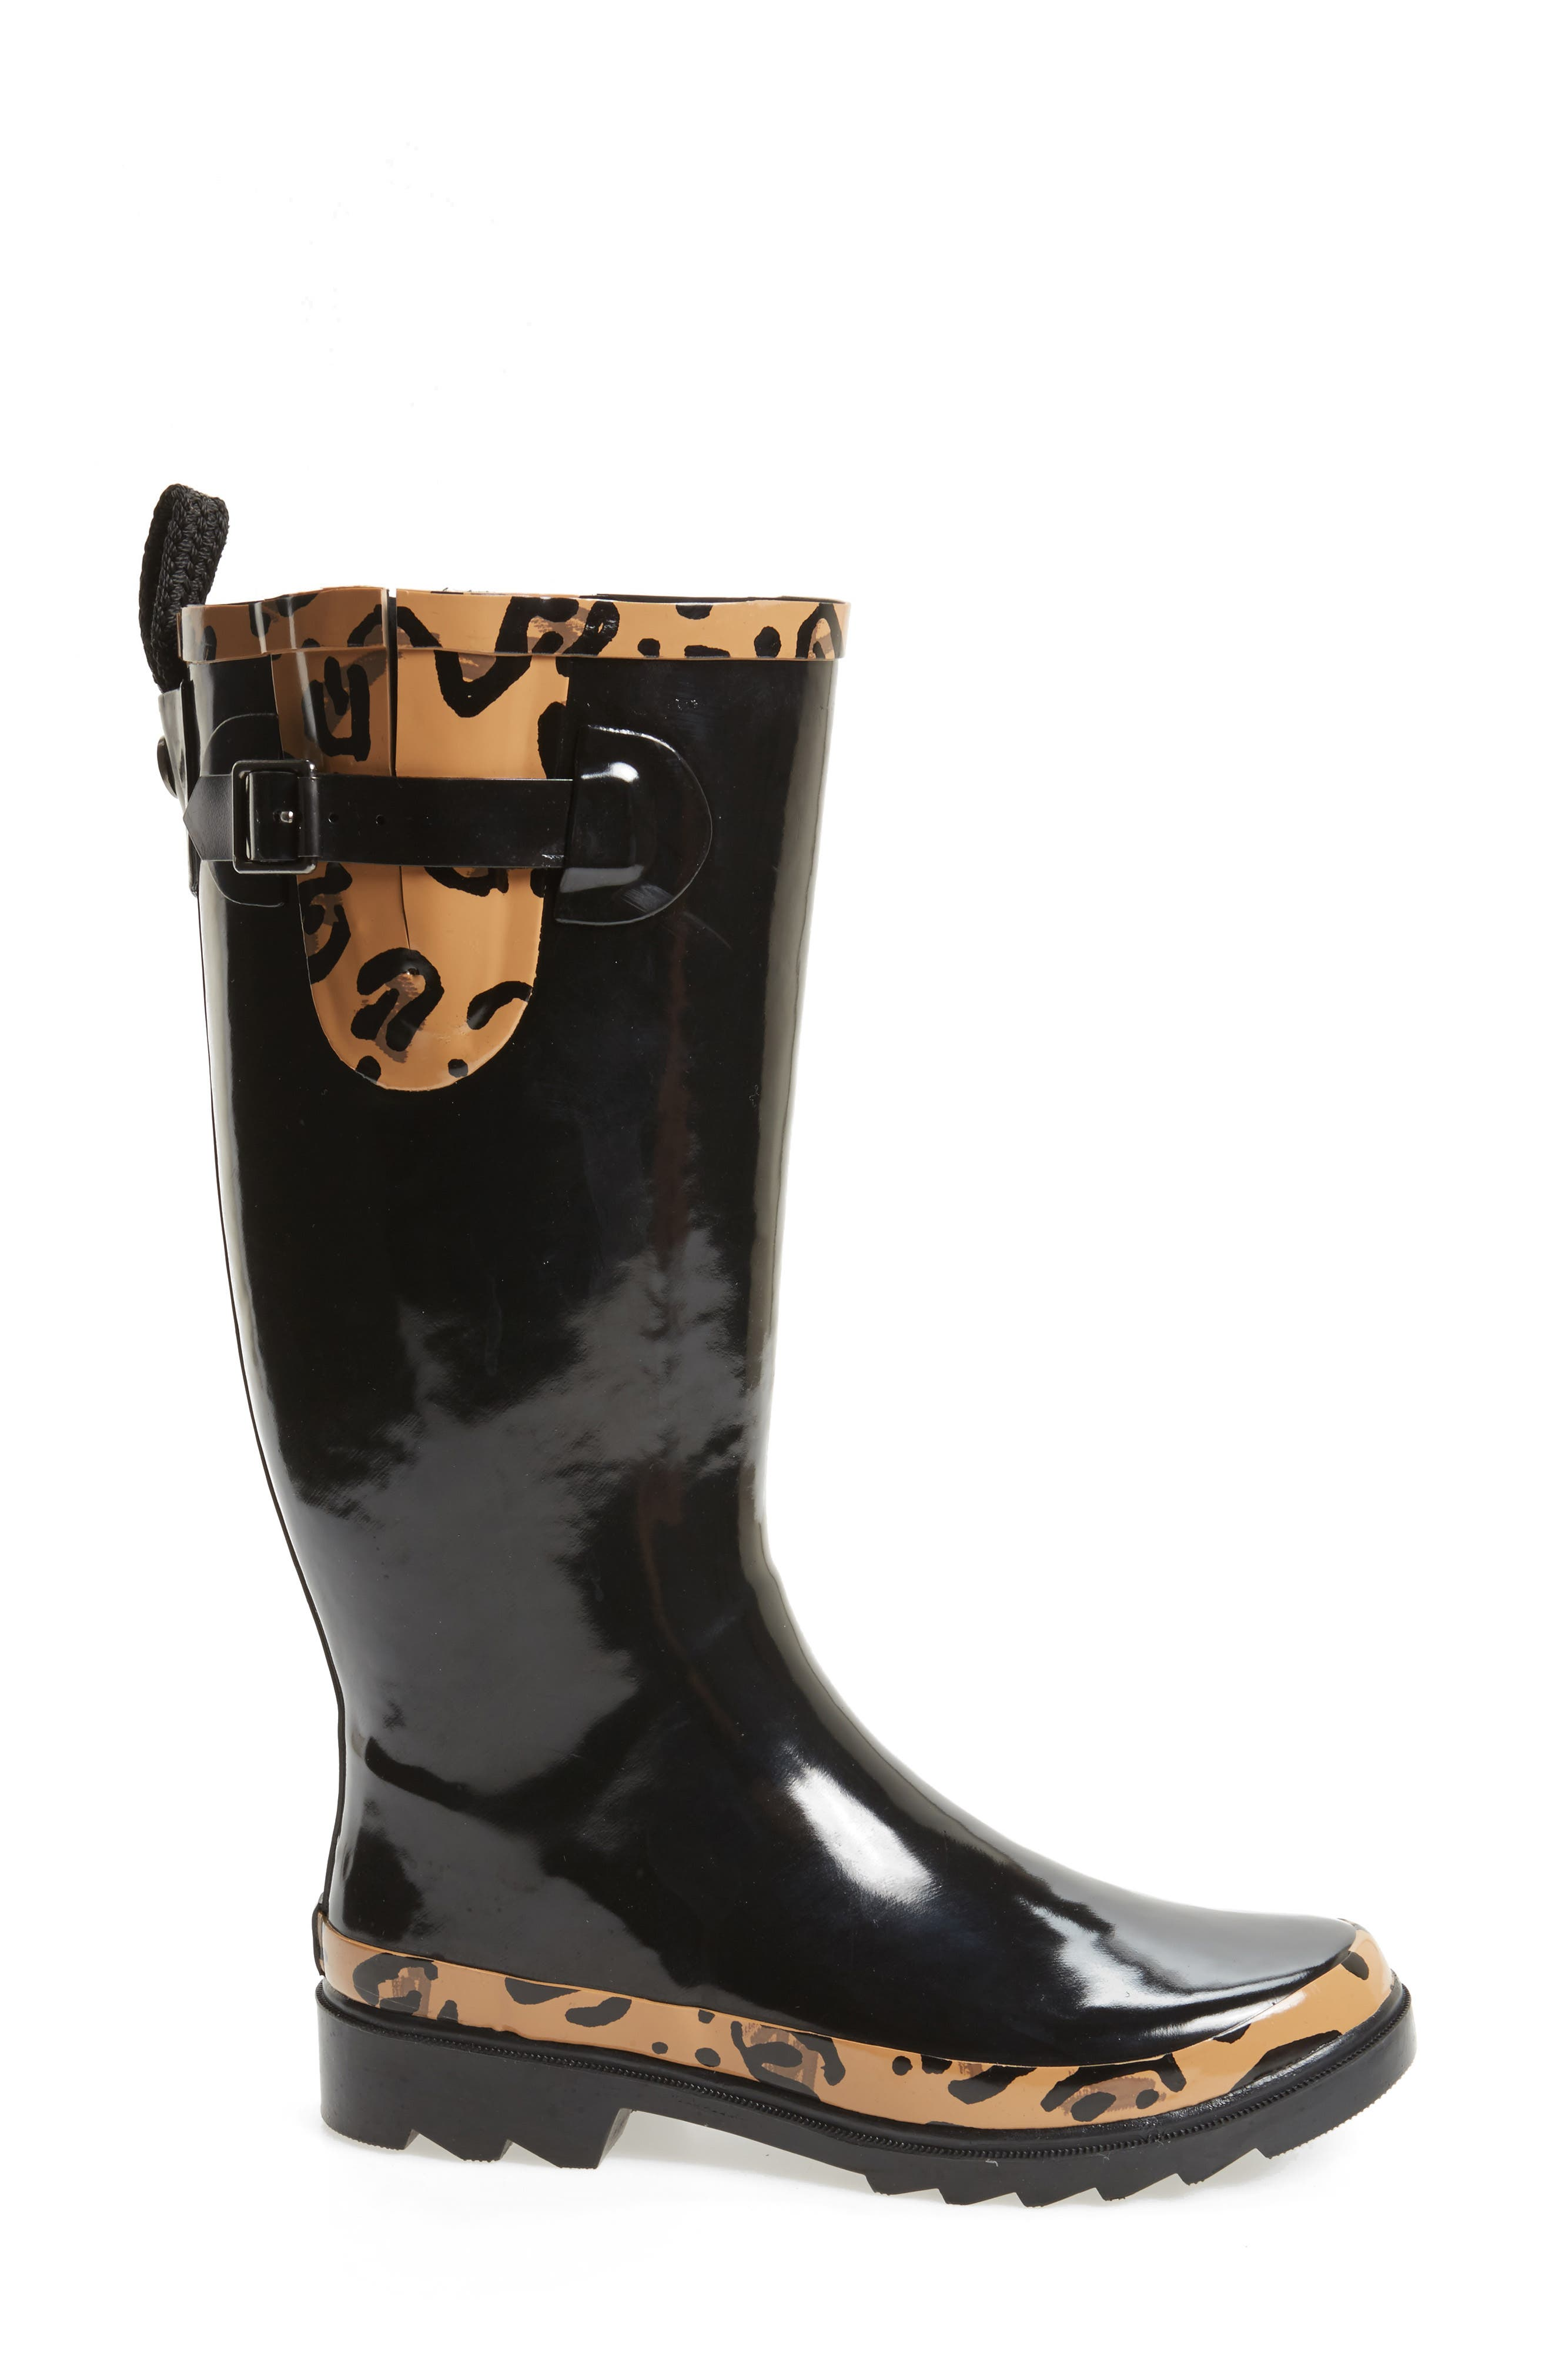 Rhythm Waterproof Rain Boot,                             Alternate thumbnail 3, color,                             BLACK LEOPARD PRINT